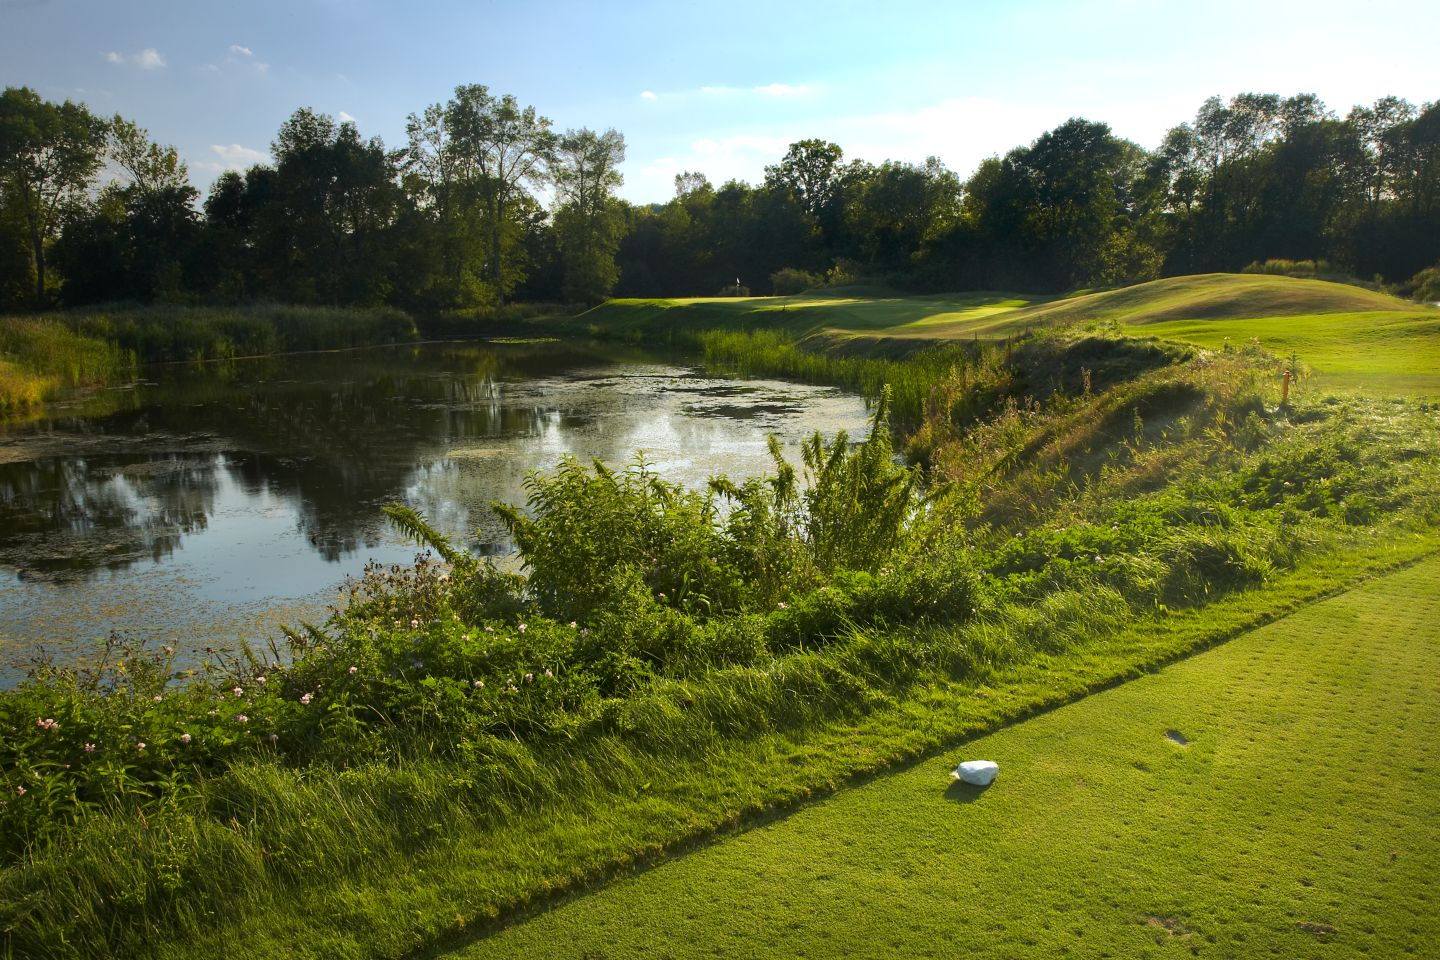 Water hazard on the left and the green of hole 17 on The River Course in the background.